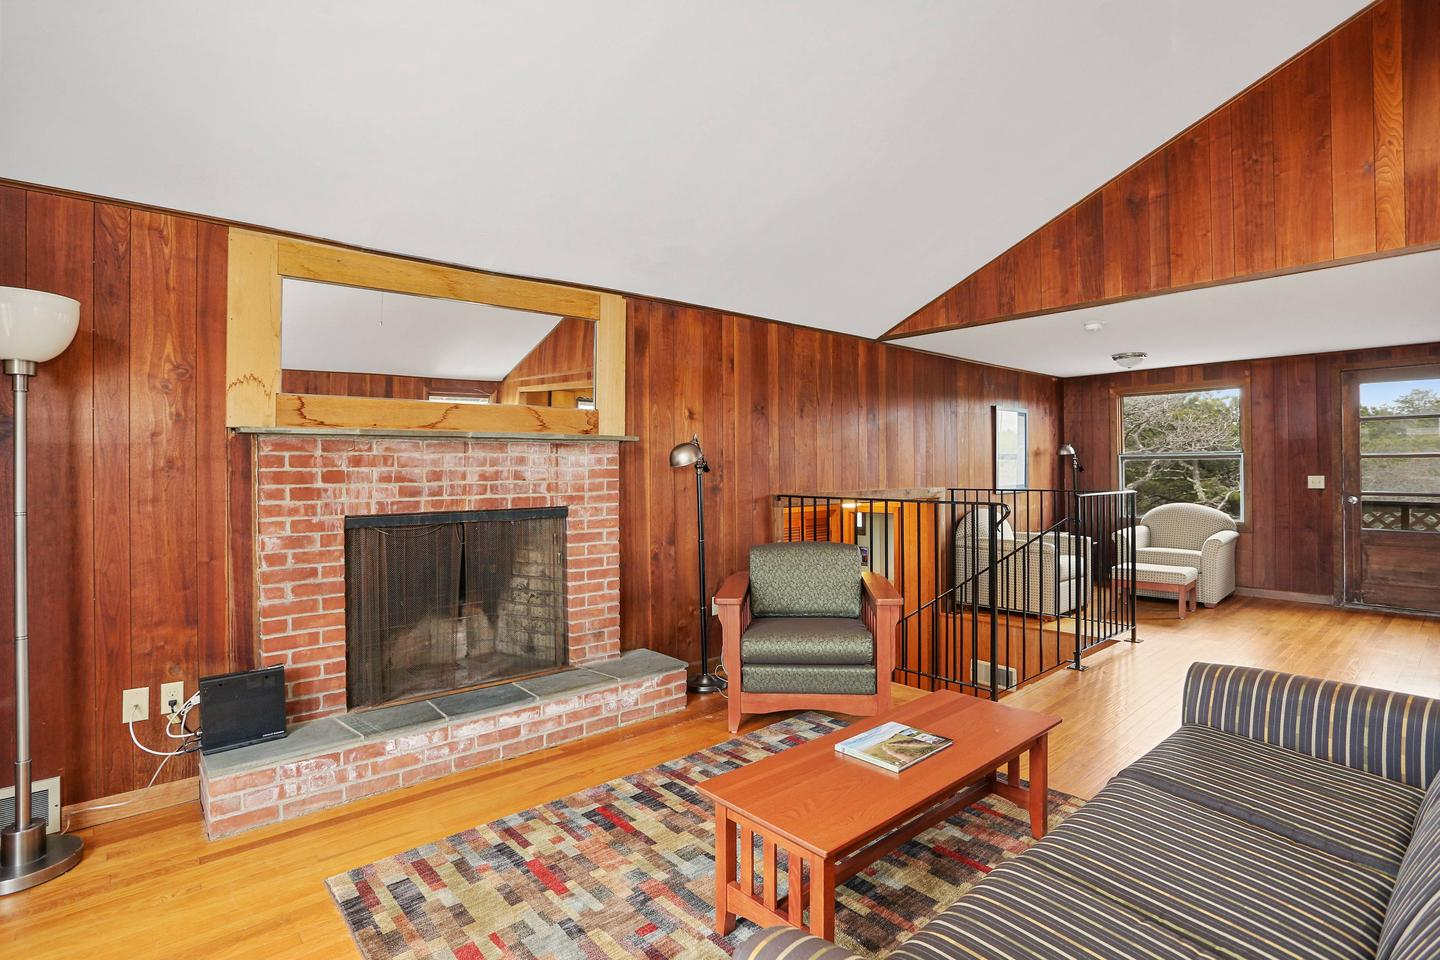 Entertain friends and family in the expansive living room